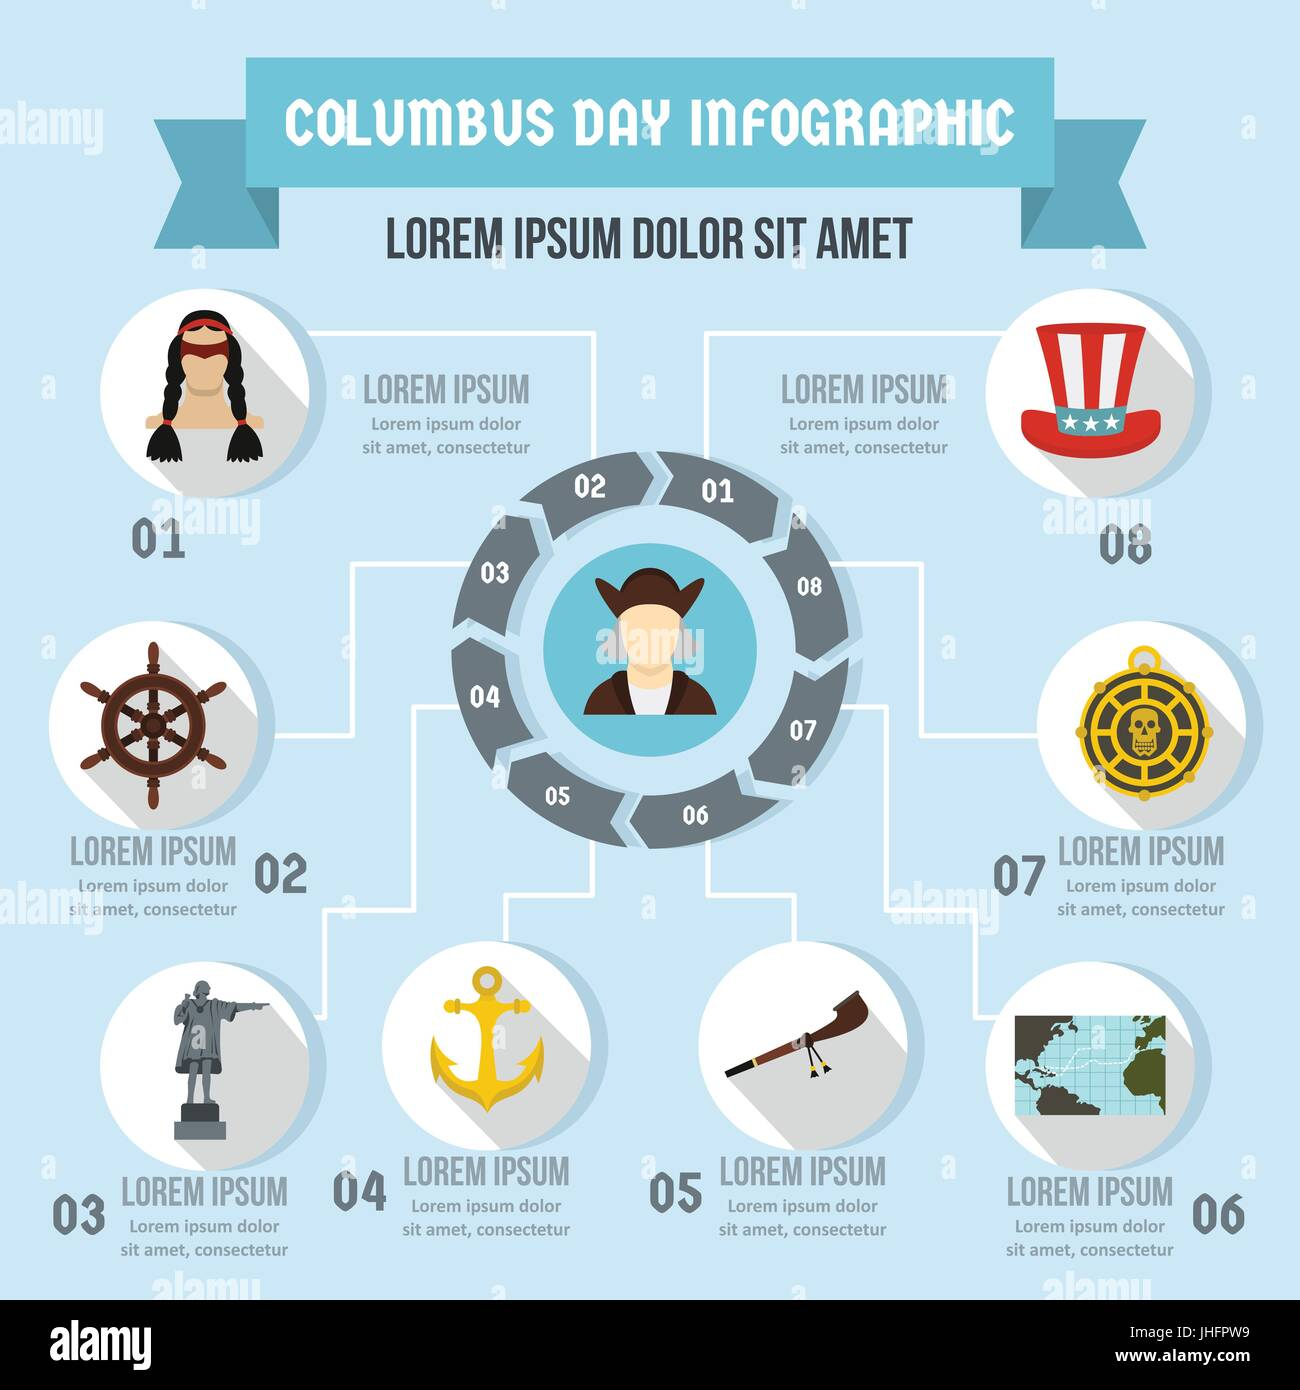 Columbus Day infographic concept, flat style - Stock Image